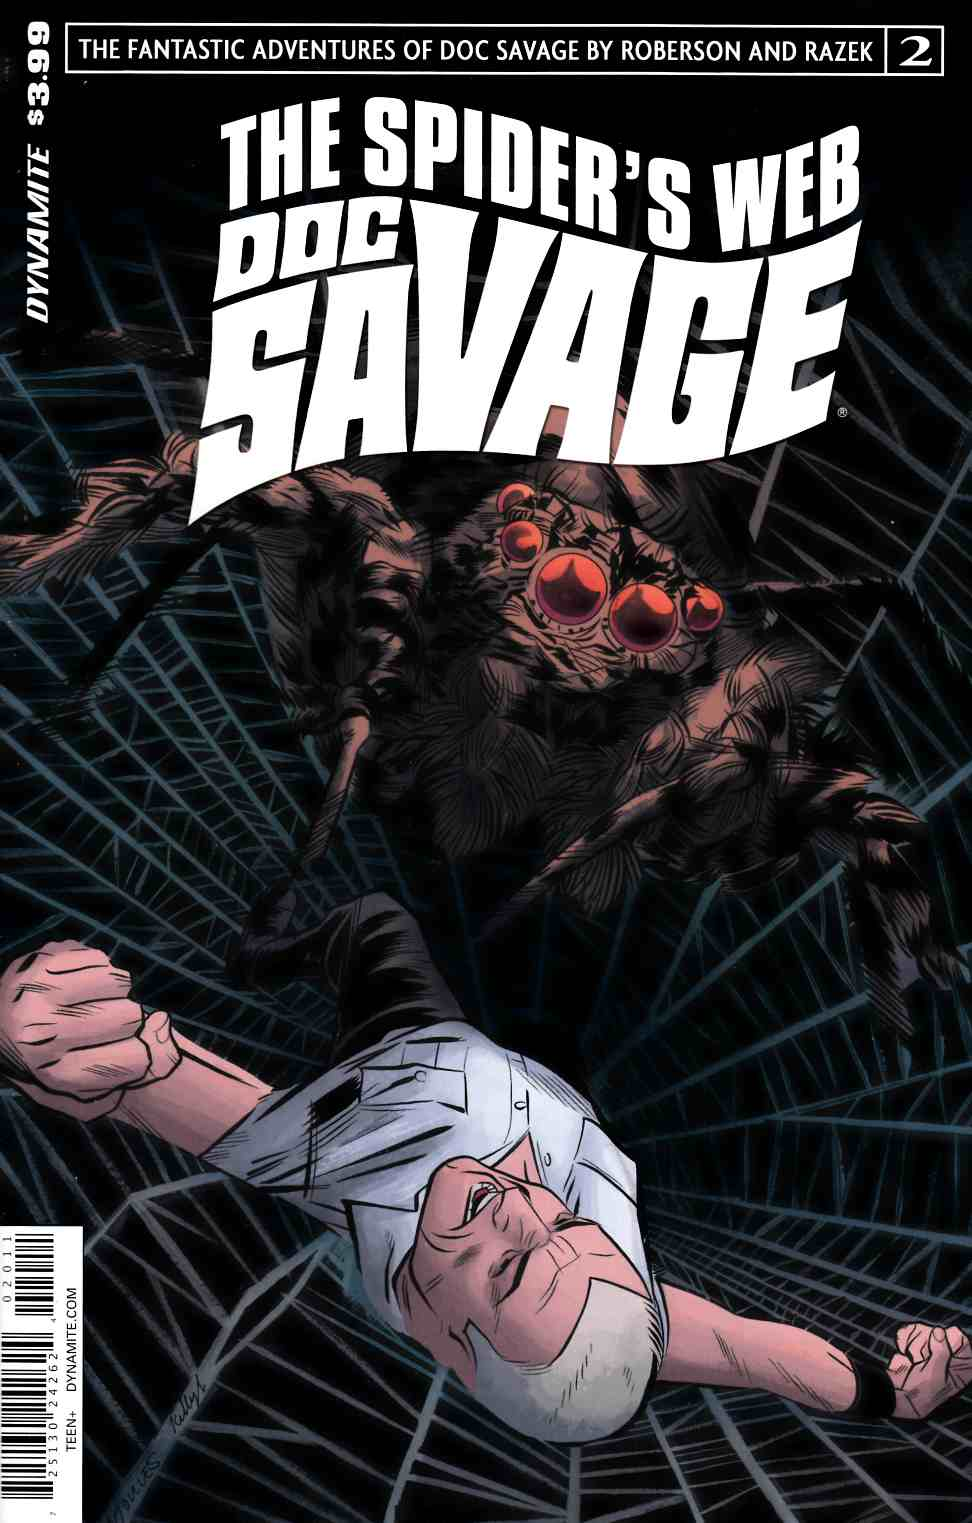 Doc Savage Spiders Web #2 Cover A- Torres [Dynamite Comic]